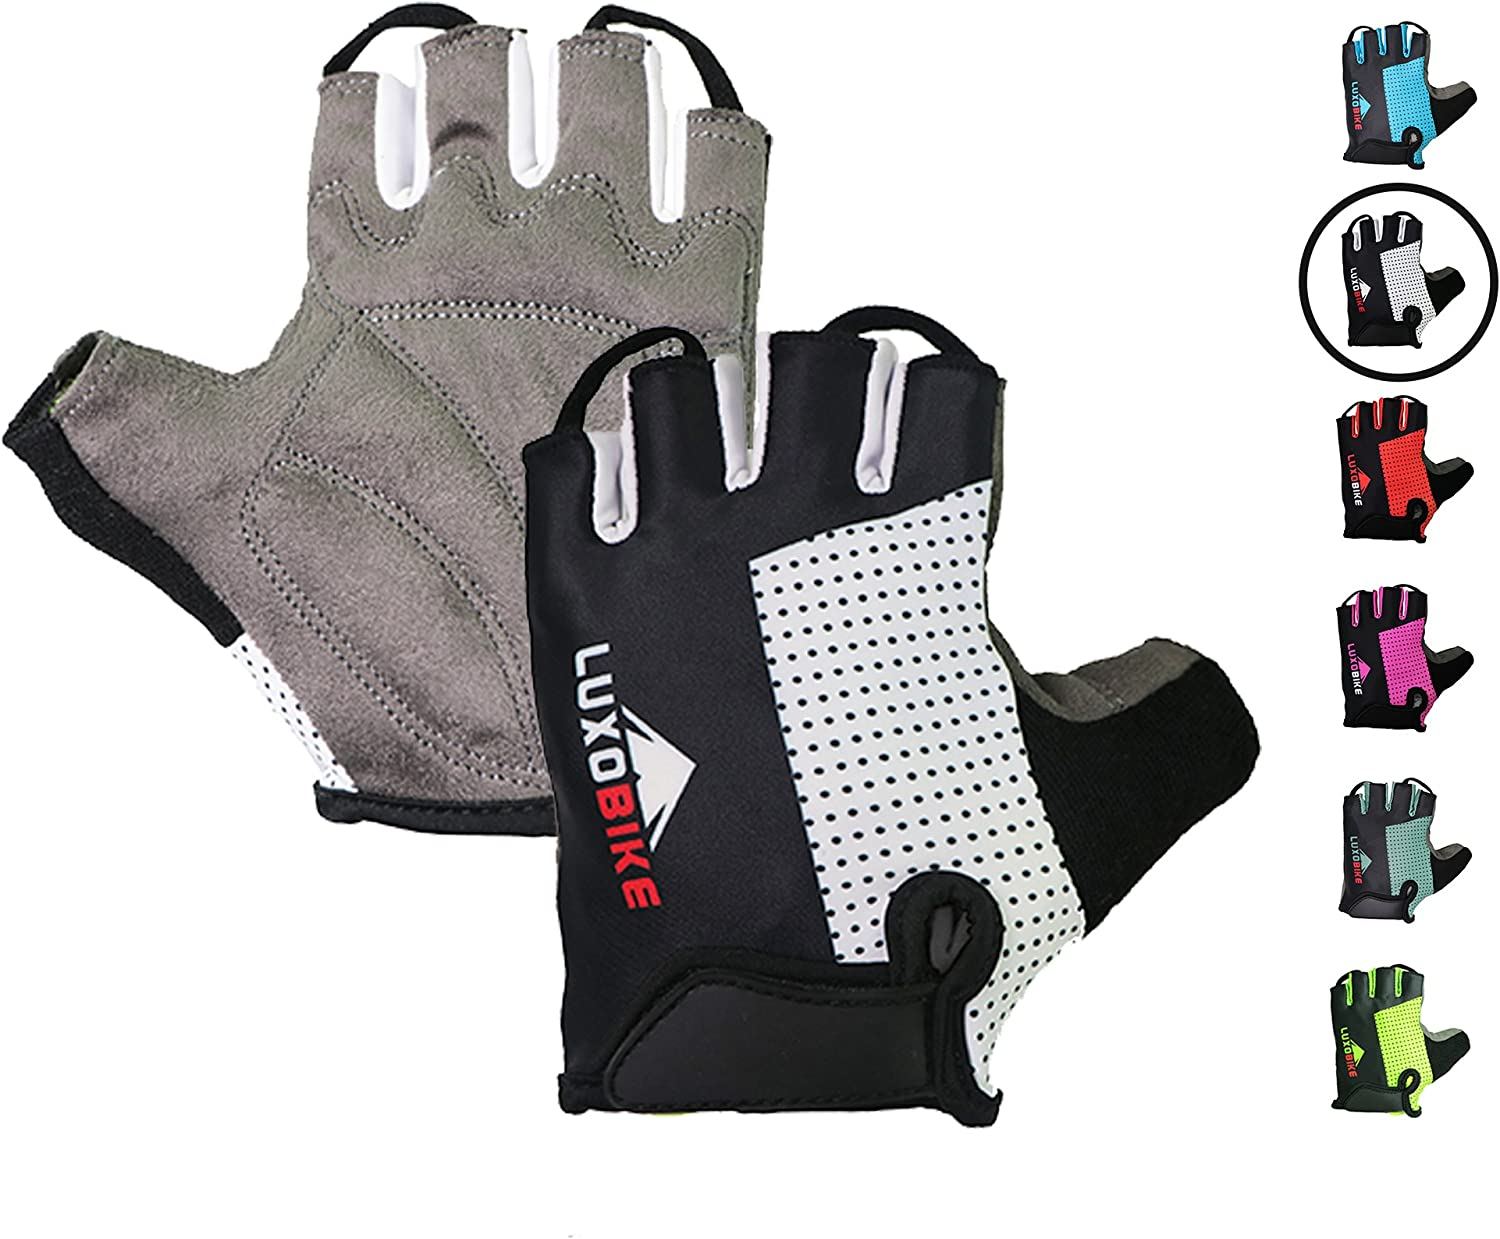 LuxoBike Cycling Gloves Bicycle Gloves Bicycling Gloves Mountain Bike Gloves – Anti Slip Shock Absorbing Padded Breathable Half Finger Short Sports Gloves Accessories for Men/Women: Clothing